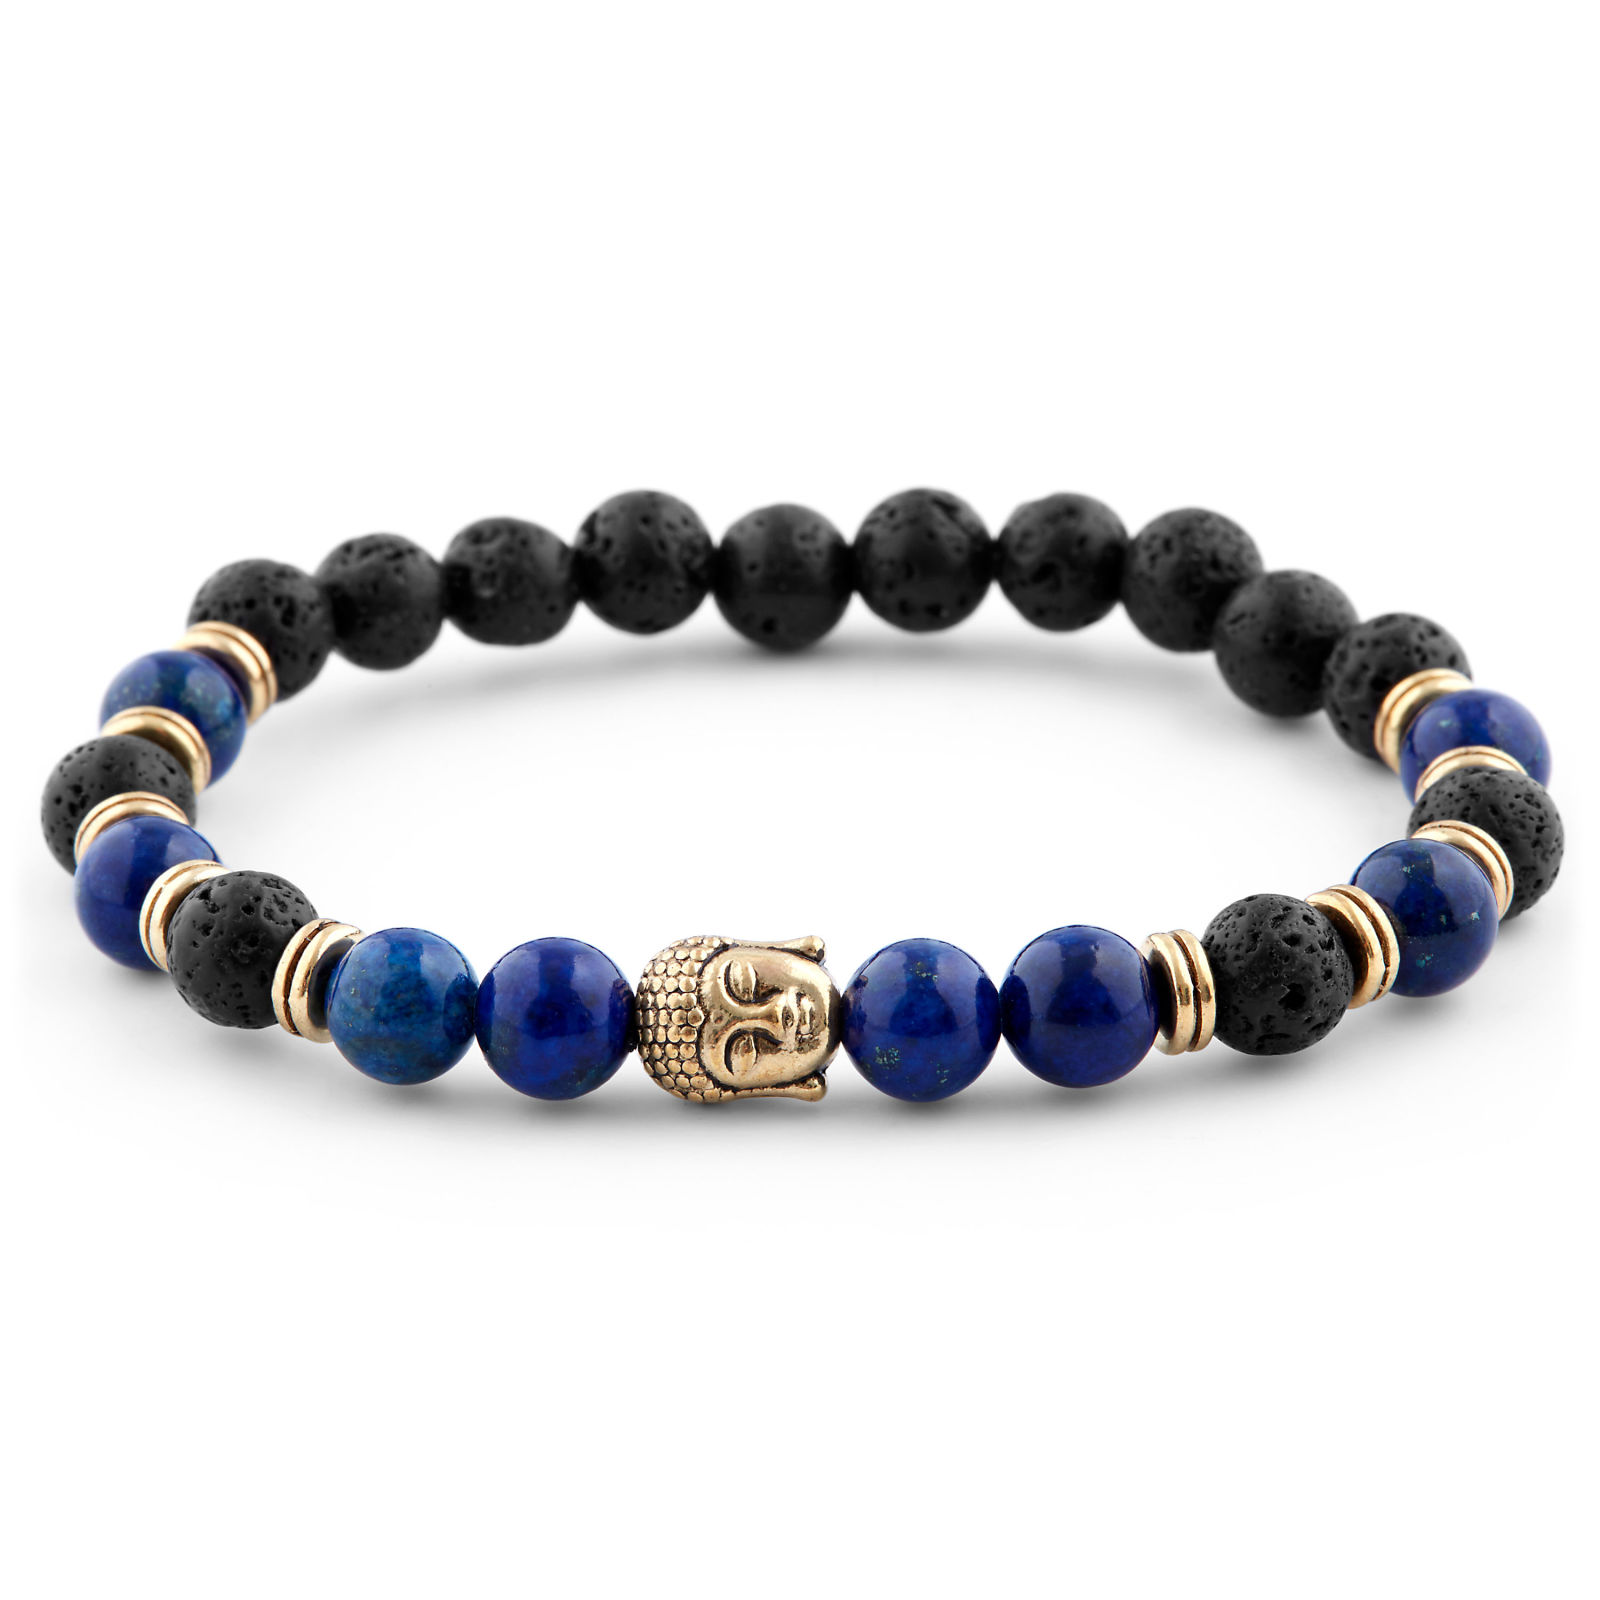 BLUE HOMAGE TO BUDDHA MEN'S BRACELET, private label